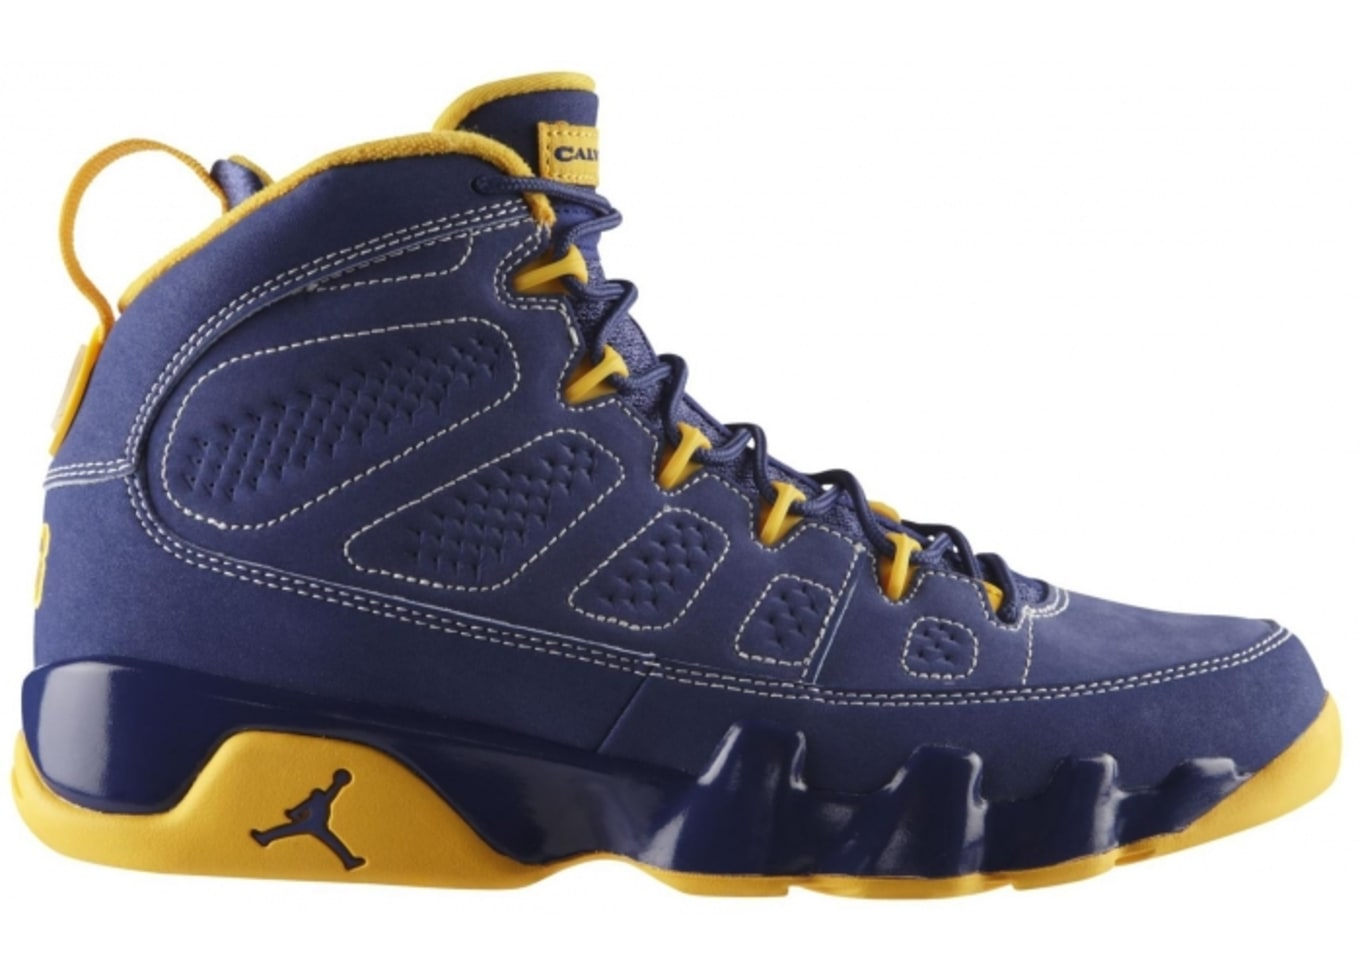 24864a573956 The Air Jordan 9 Price Guide